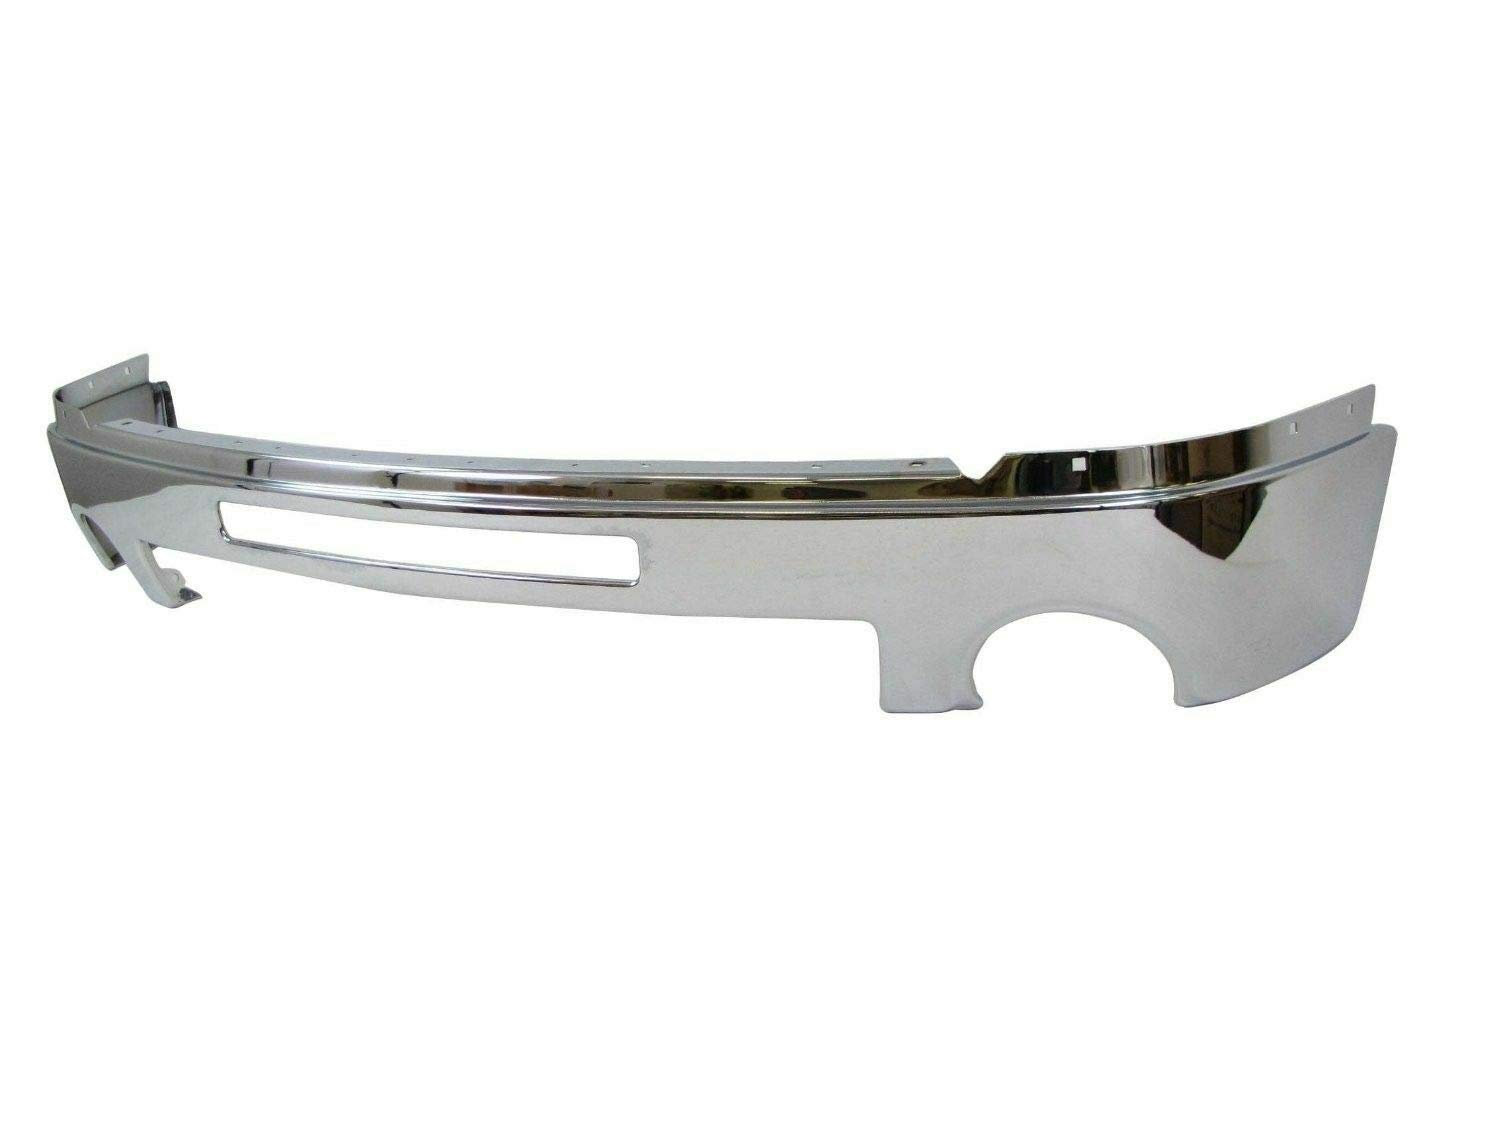 Front Chrome Bumper for 2007-2013 GMC Sierra 1500 SLE//SL//SLT Lower Valance with Intake Hole /& Fog Light Hole Without Brackets Direct Replacement Silver Set of 4 GM1002834 GM1015100 GM1092211 GM1065108